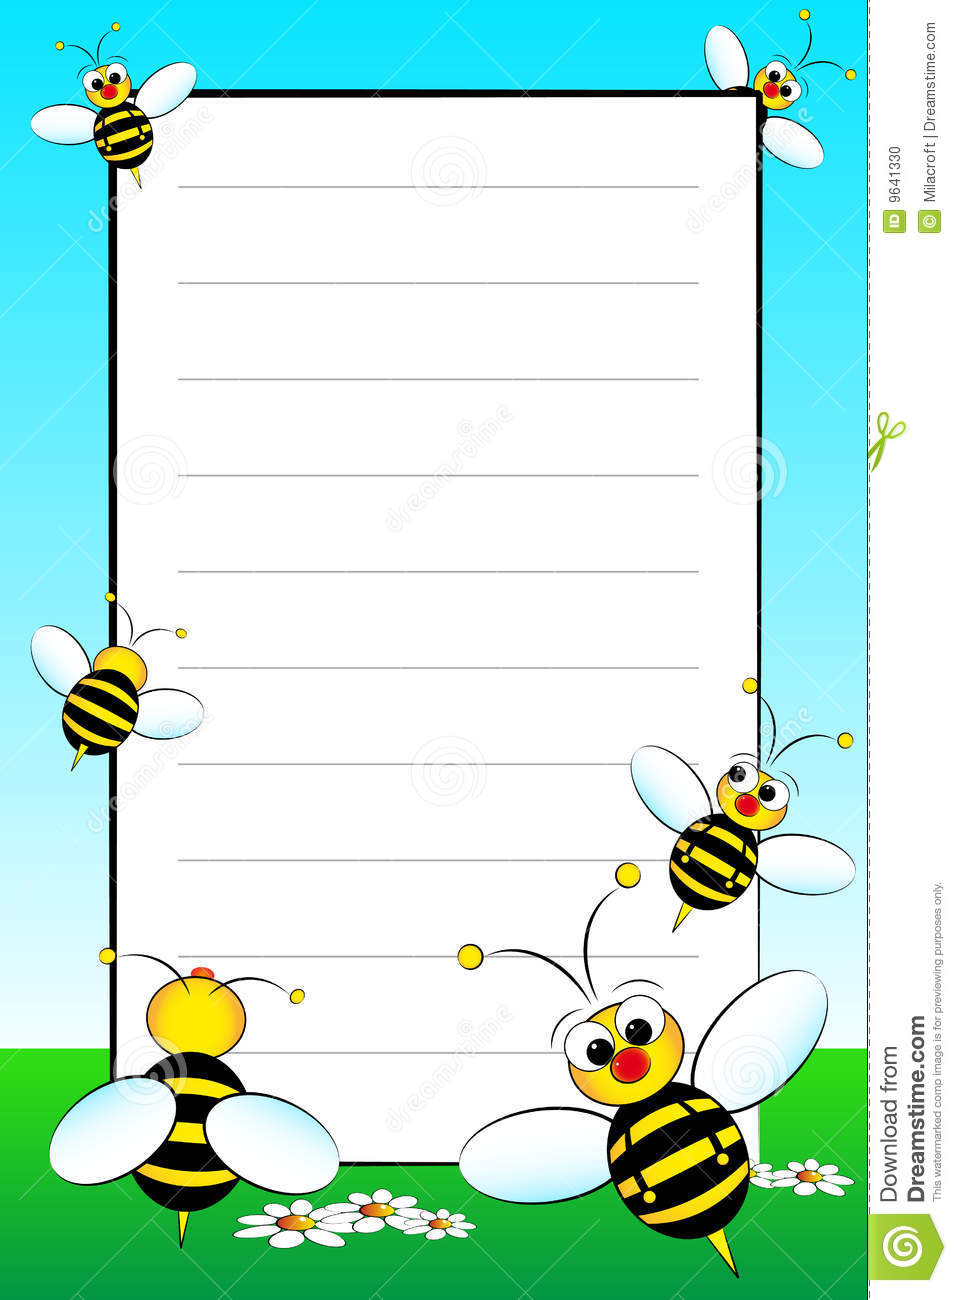 Kid Notebook With Blank Lined Page Photo Image 9641330 – Blank Lined Page